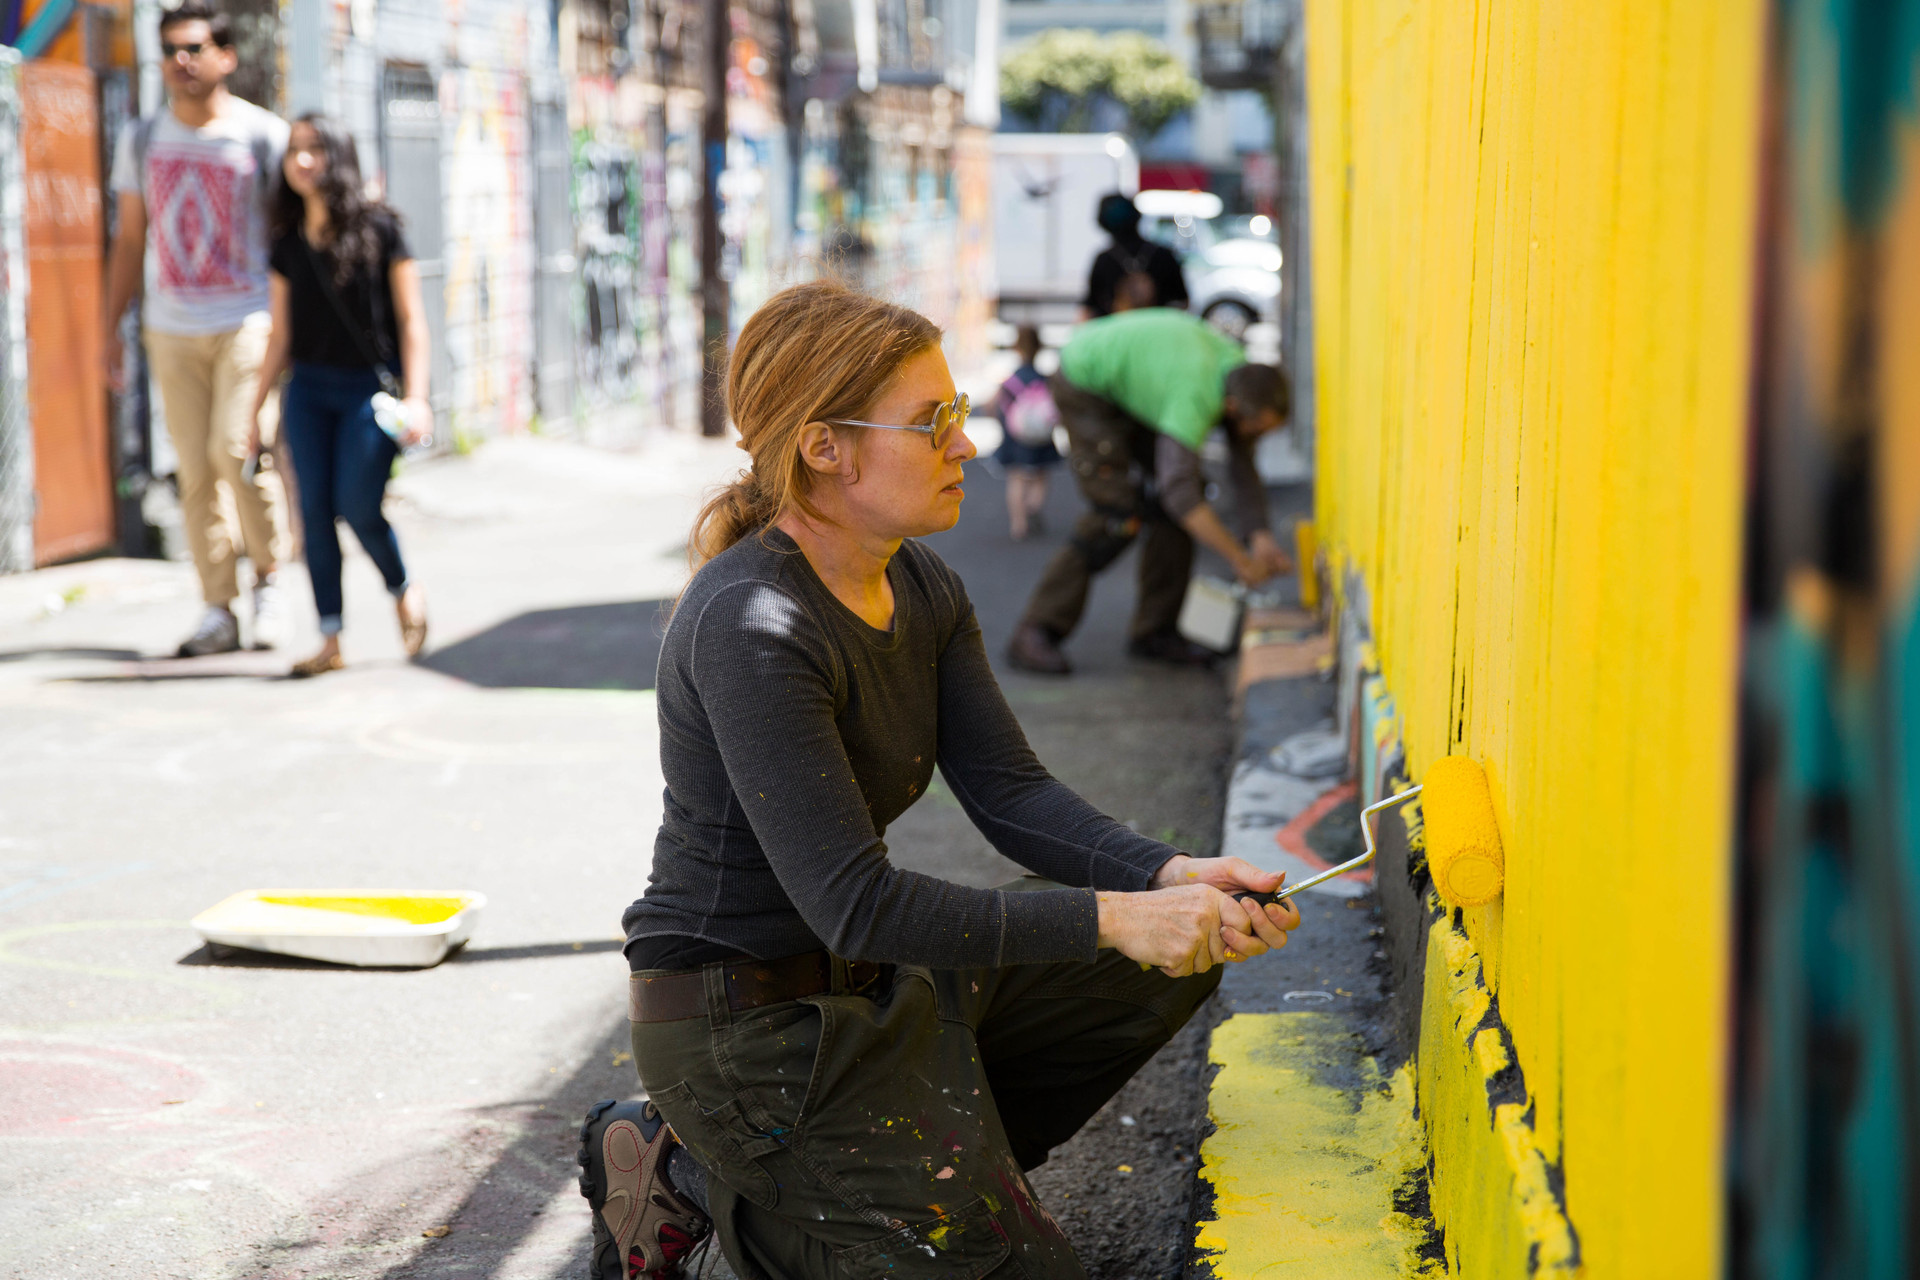 Megan Wilson of the Clarion Alley Mural Project puts up a temporary mural after someone painted a full-scale mural without permission. (Jeremy Raff/KQED)